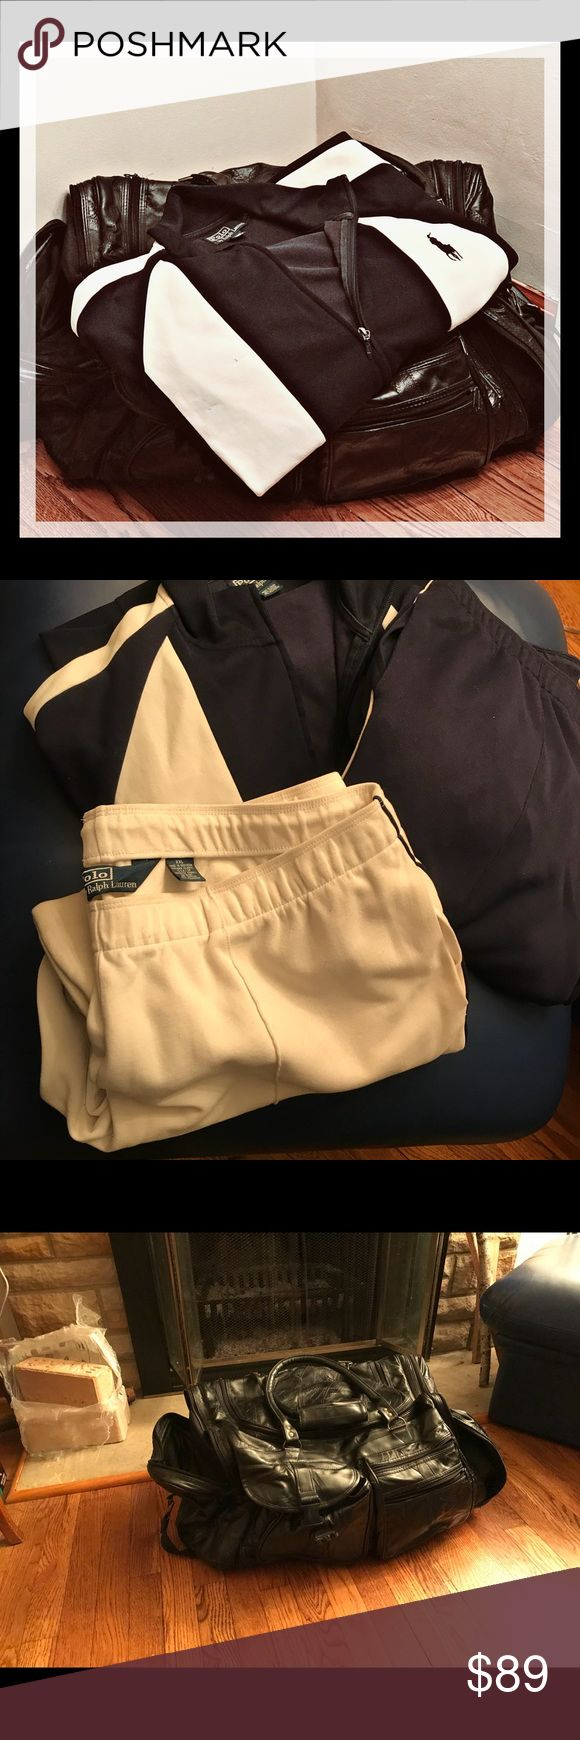 Ralph Lauren jogging suit w large leather duffel Ralph Lauren jogging suit with two pairs of pants blue and white. Like having too expensive jogging suits. Topped off with a large bag in leather looks like $1 million Carry your work out and you're close for the day even use it for travel Bags Duffel Bags